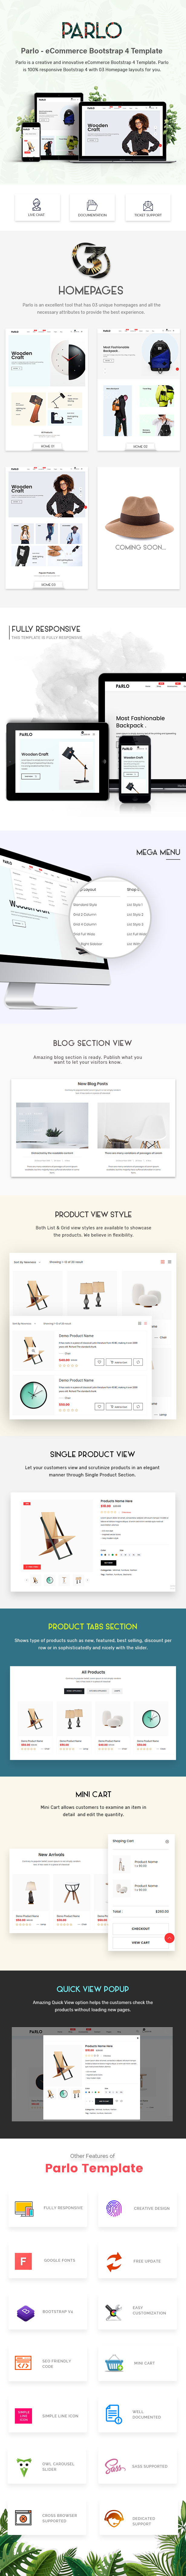 Parlo – eCommerce Bootstrap 4 Template - 1